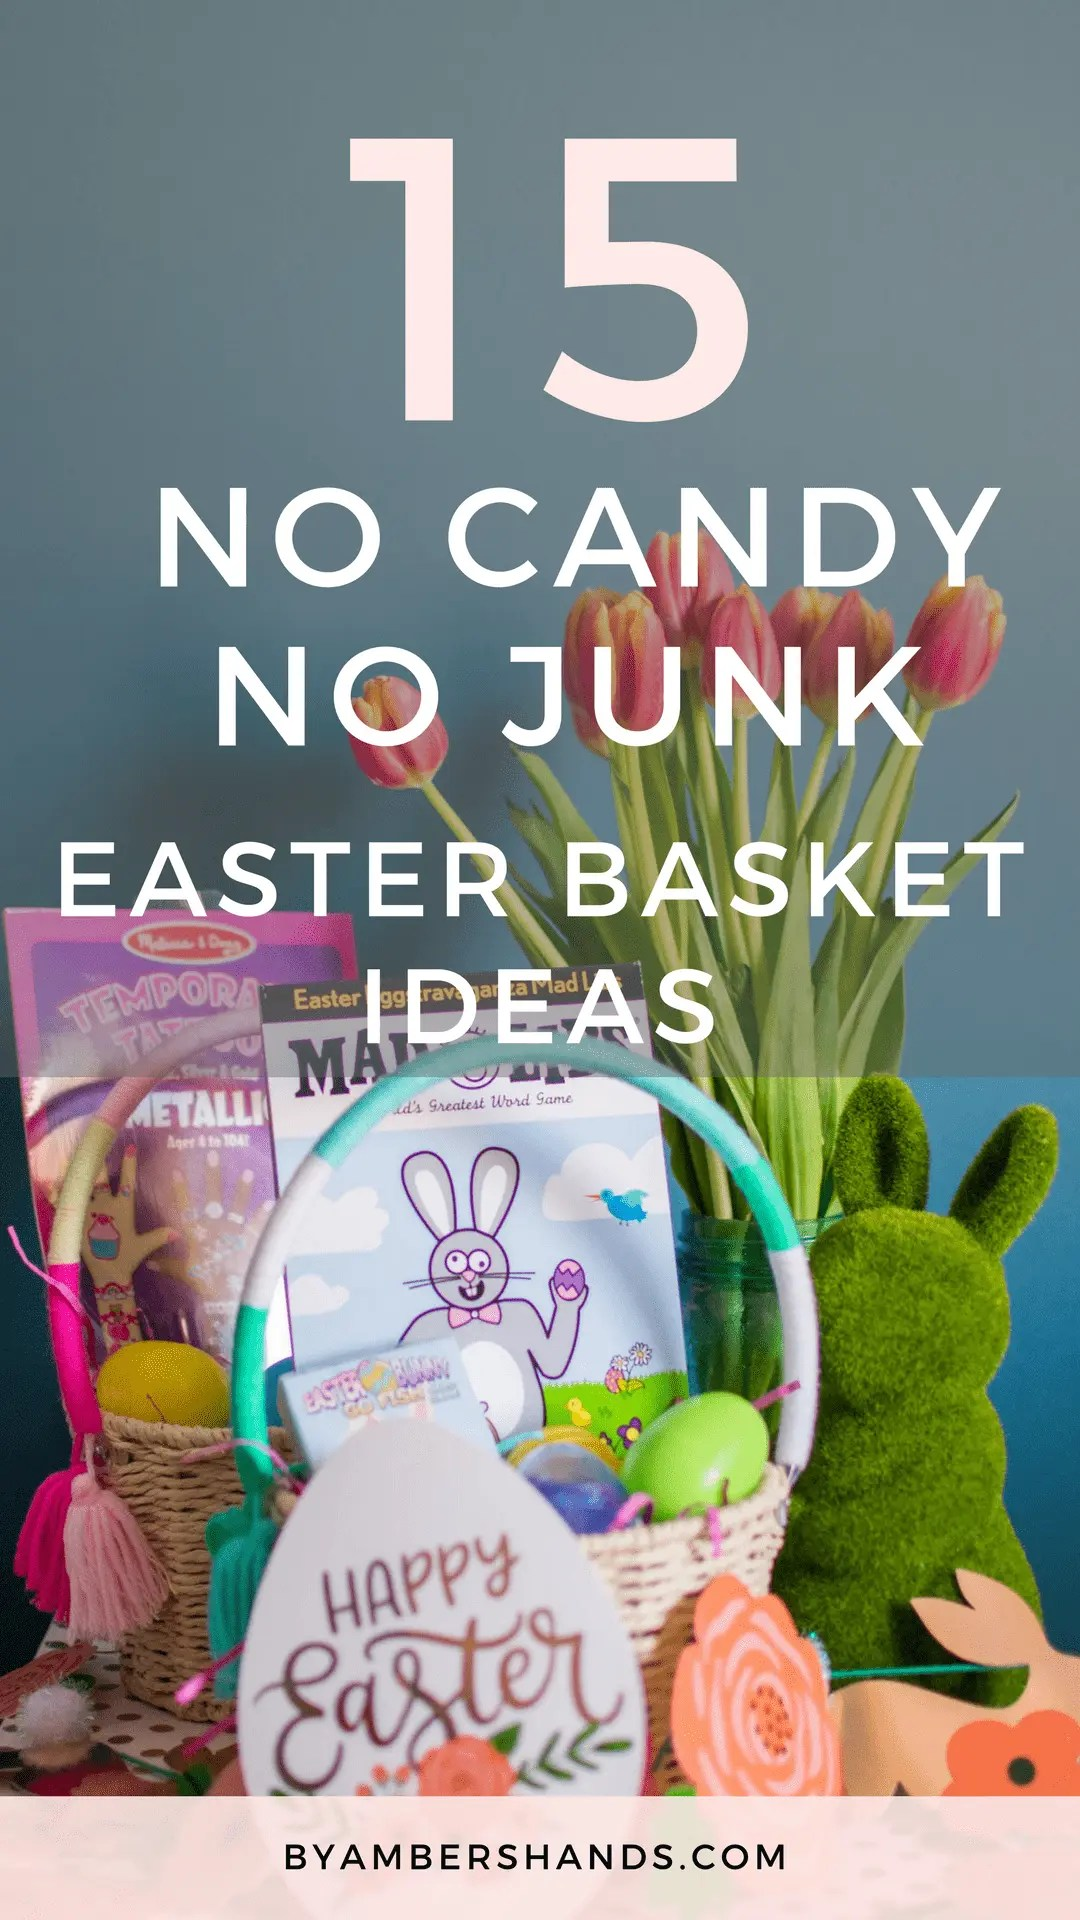 15 No Candy No Junk Easter Basket Ideas -by amber's hands-